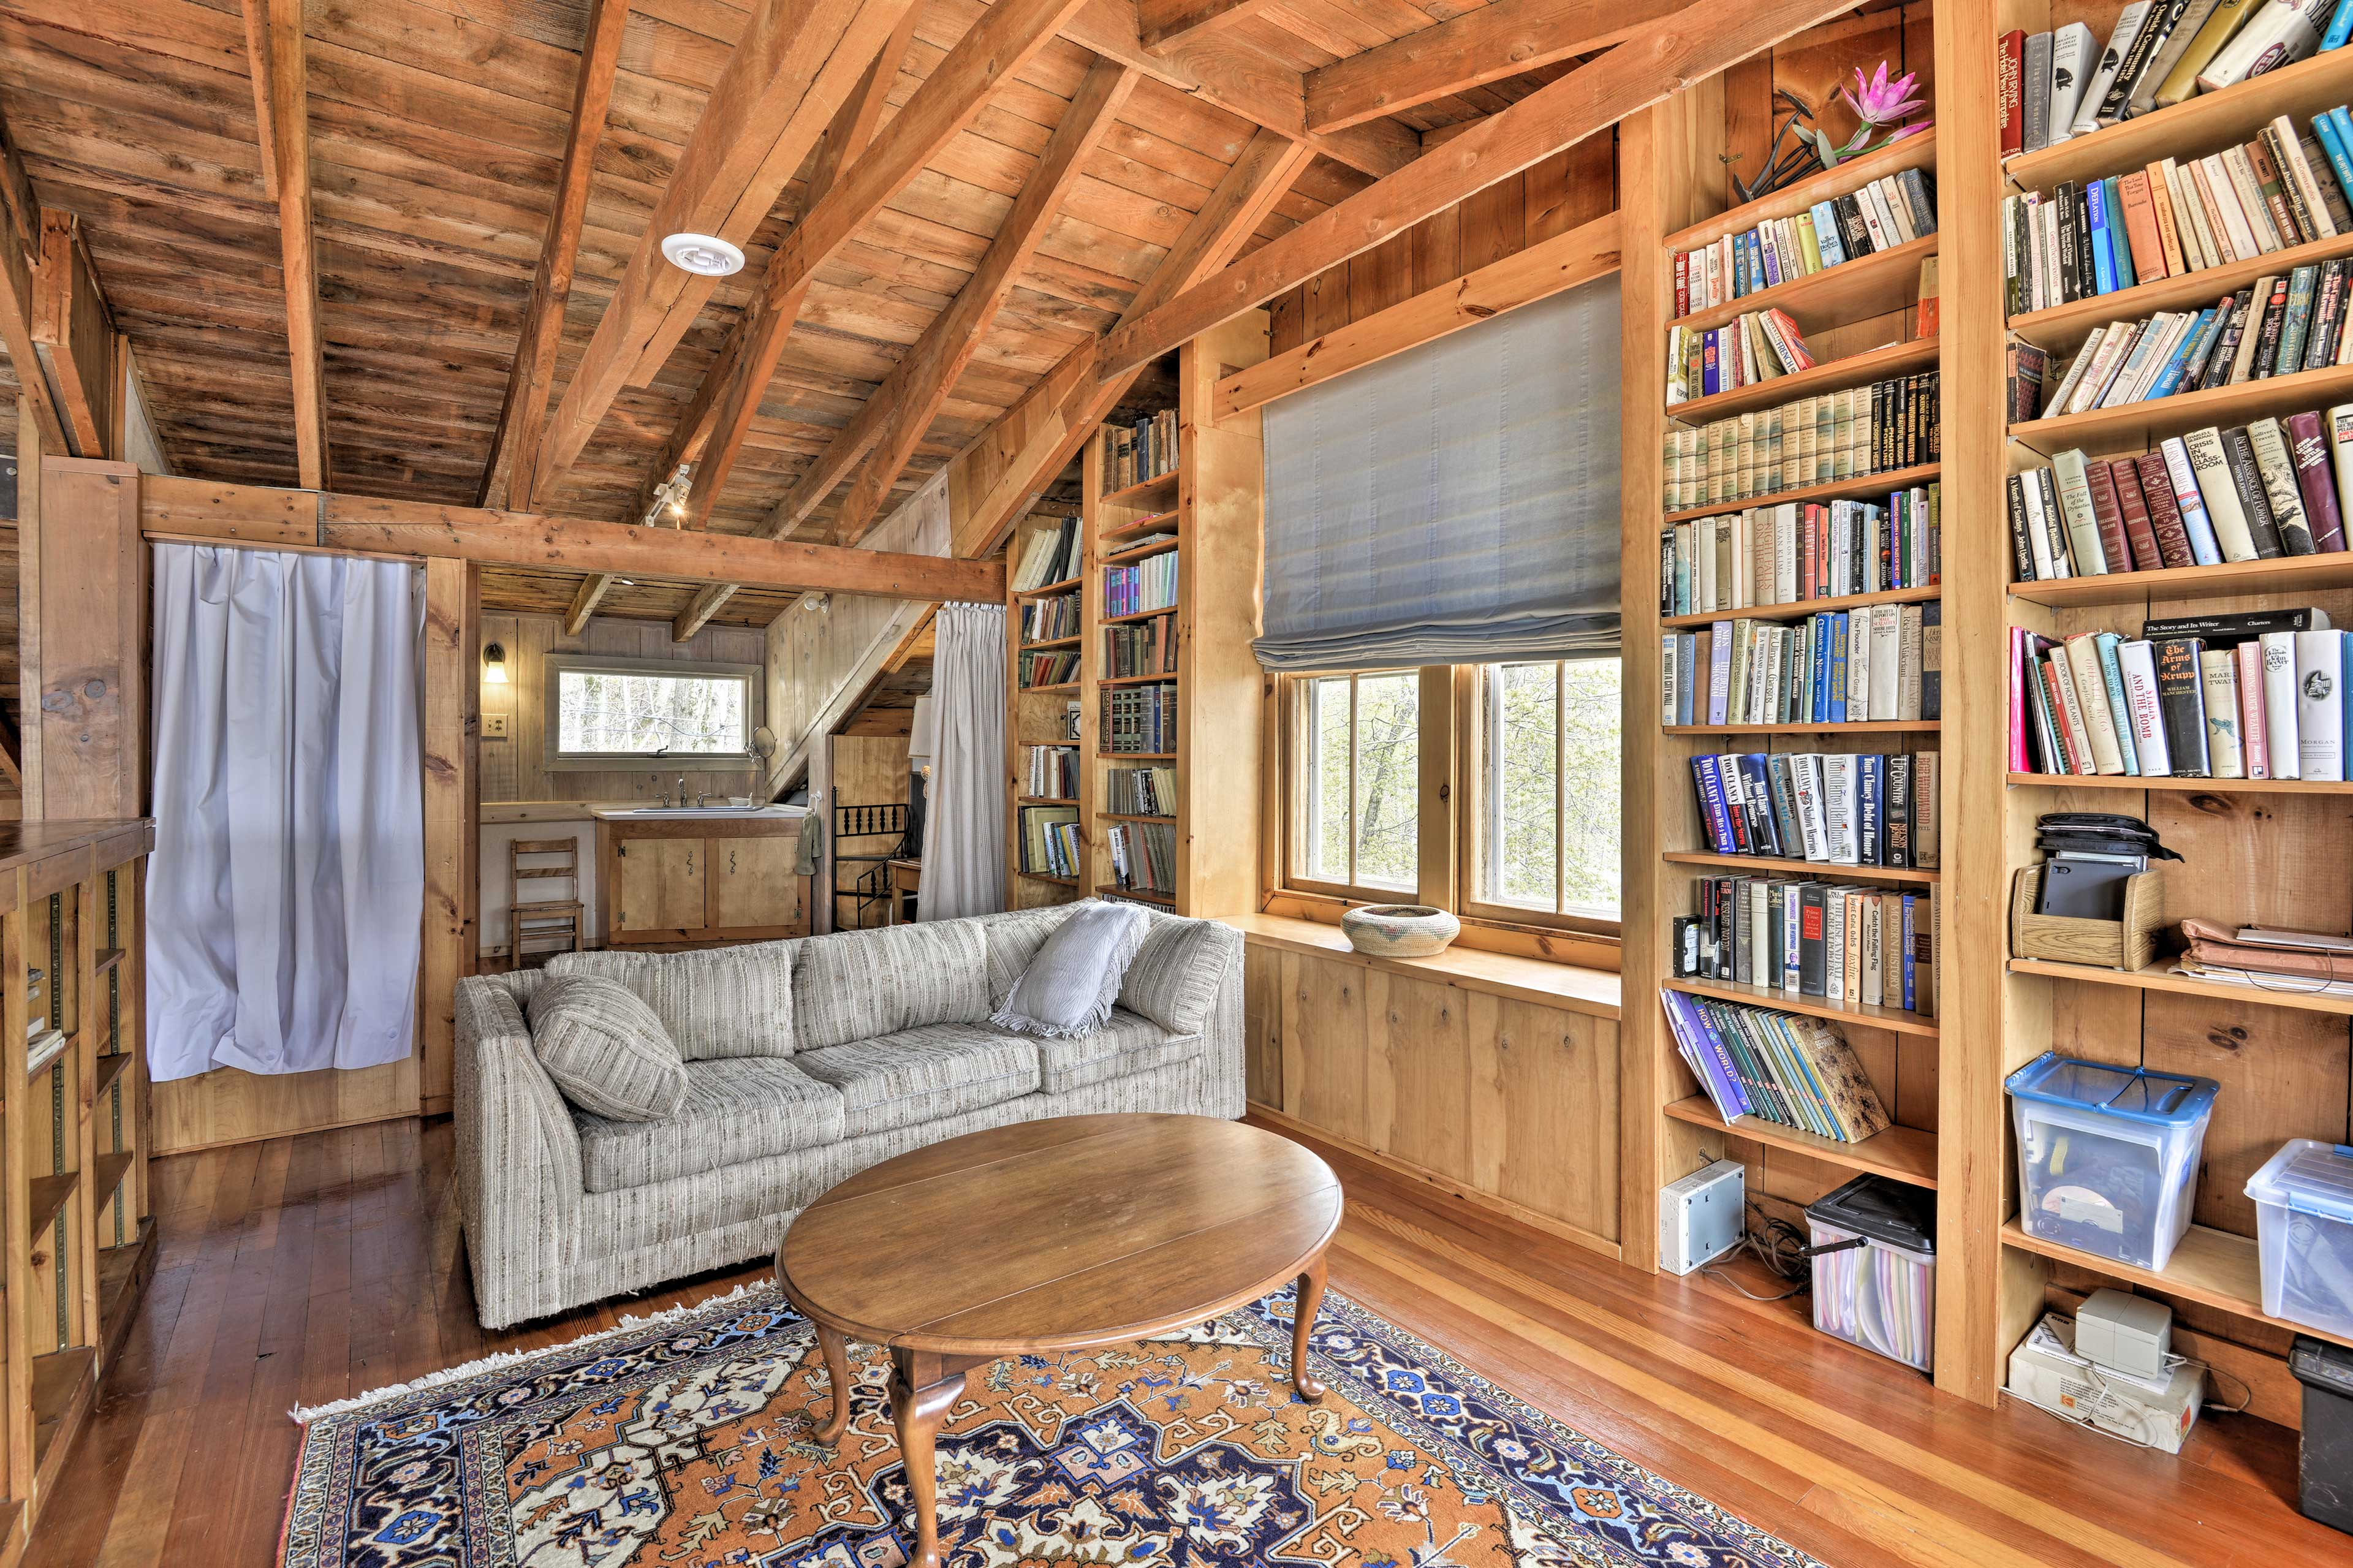 Up in the loft, you'll find a second bathroom and cozy reading nook.